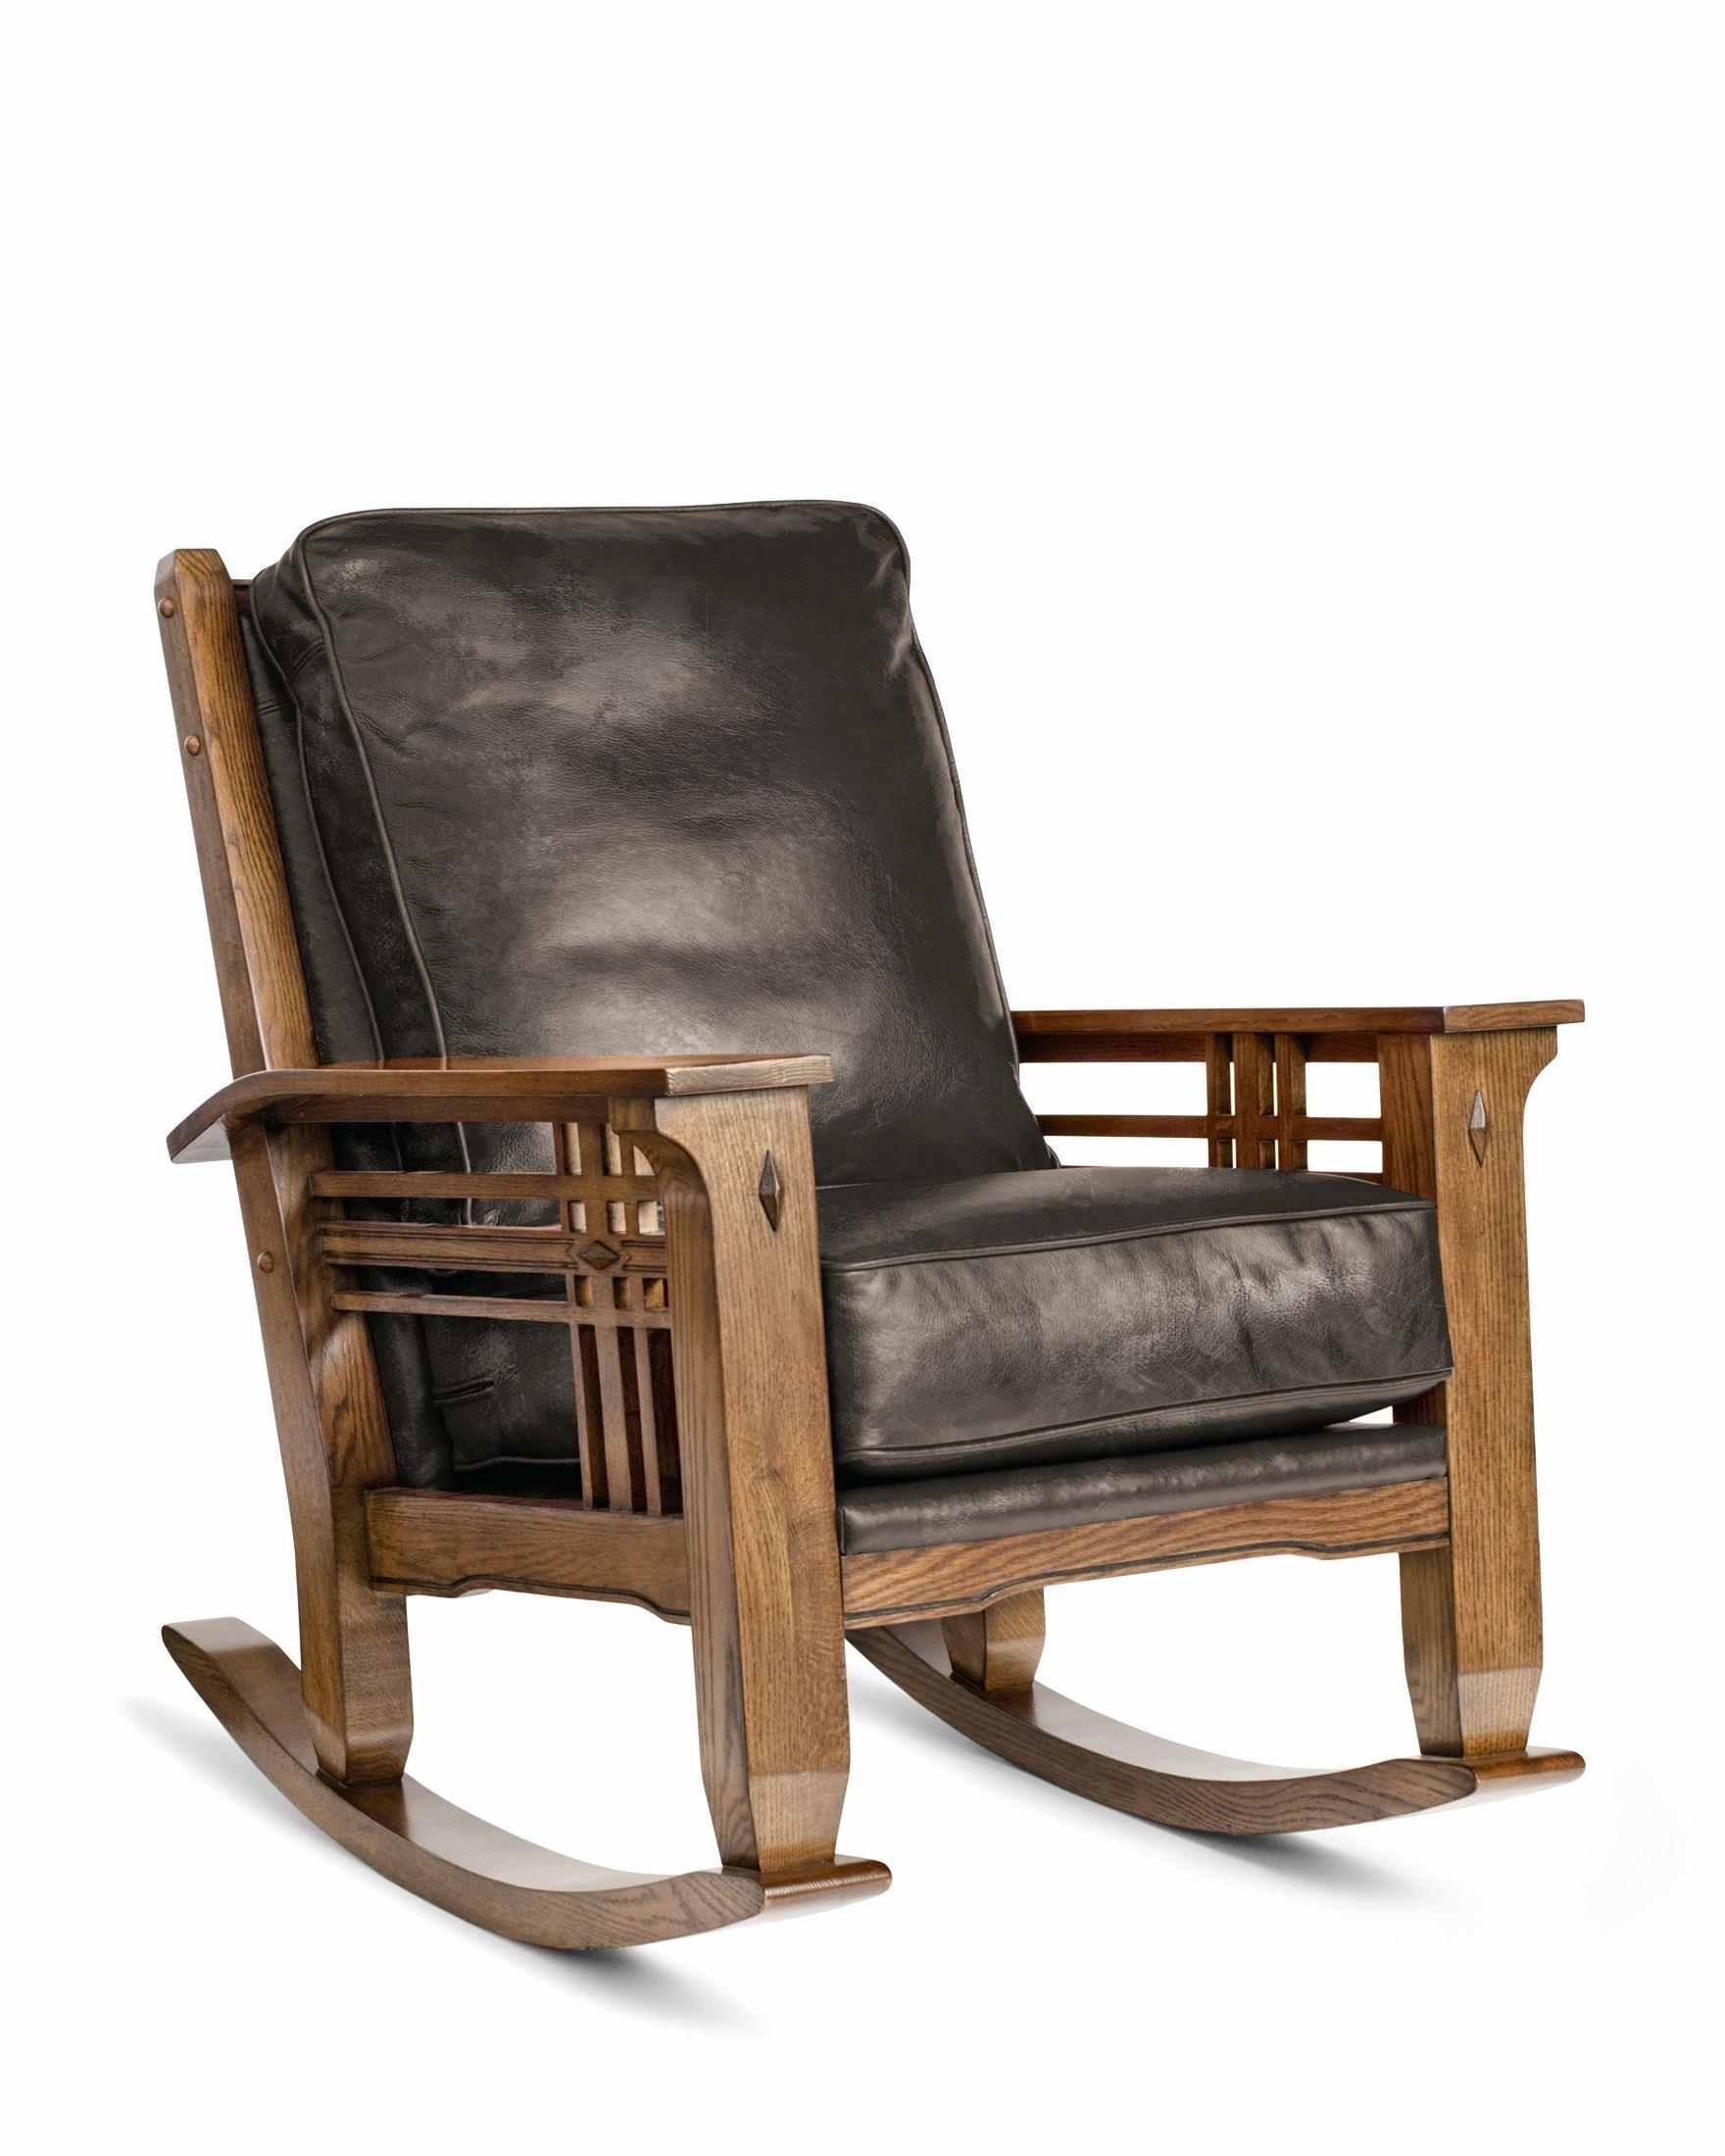 Leather Rocking Chair – Happyshaman In Faux Leather Upholstered Wooden Rocking Chairs With Looped Arms, Brown (#8 of 20)